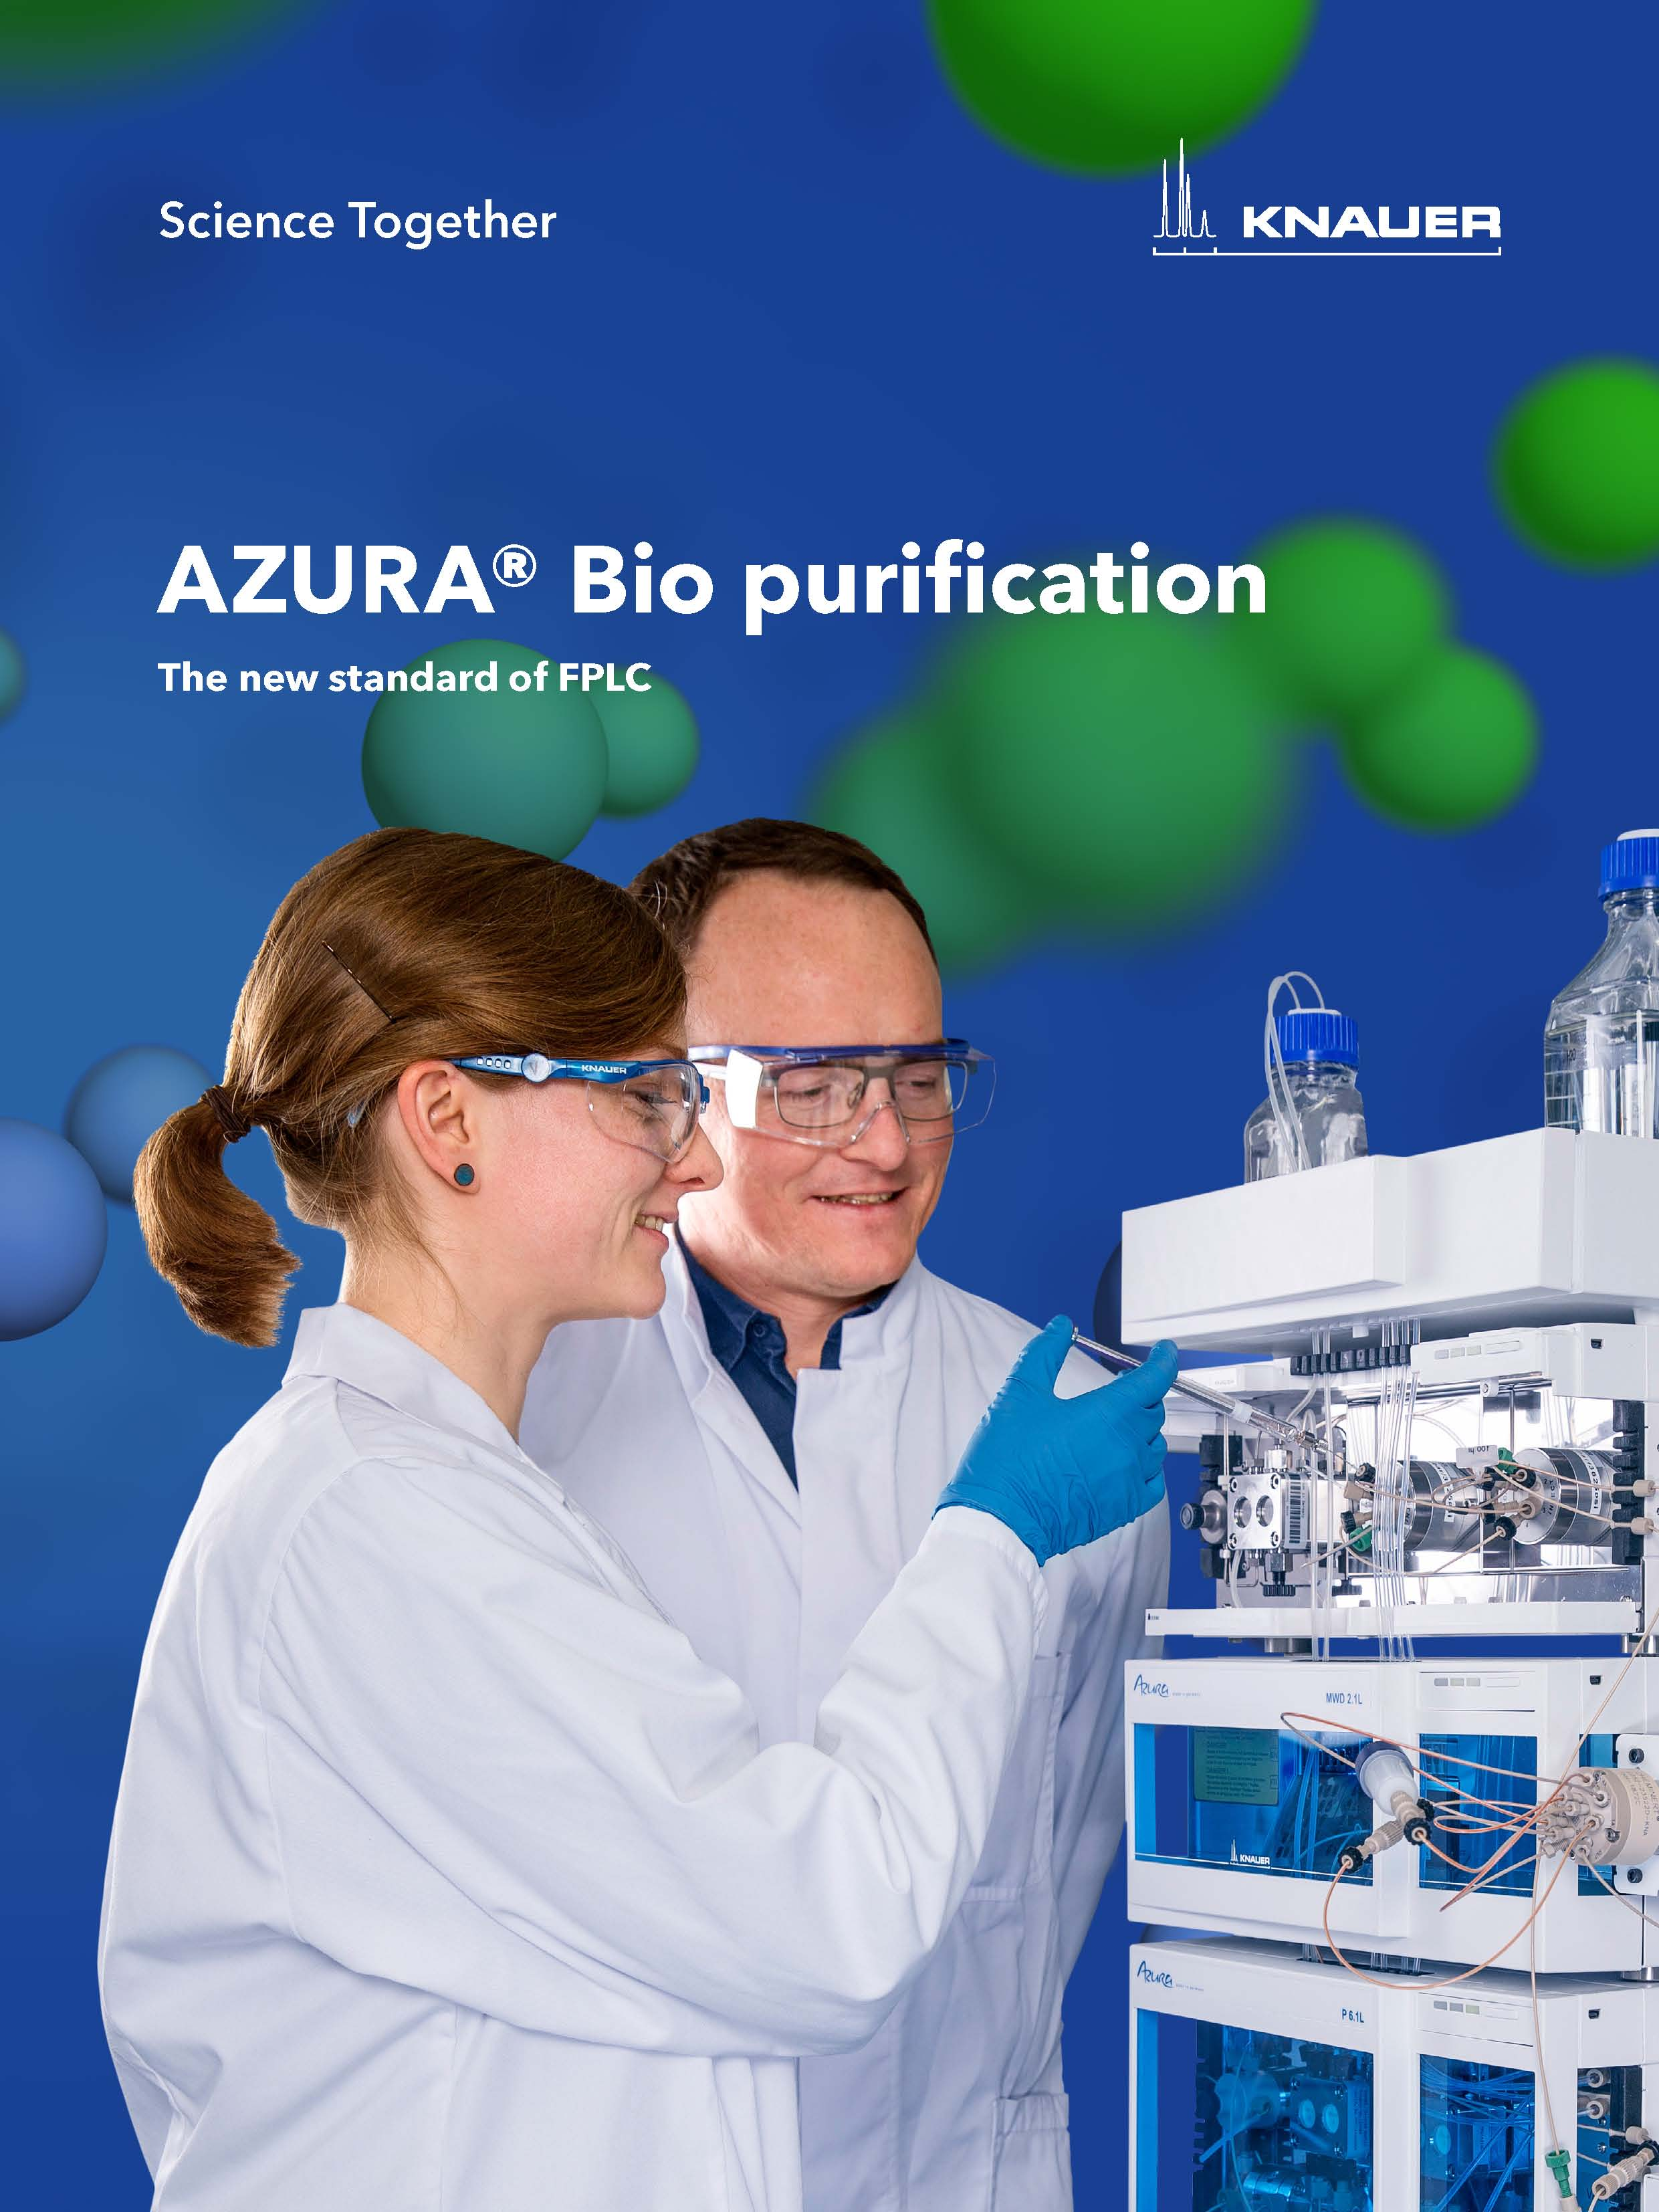 AZURA® Bio purification